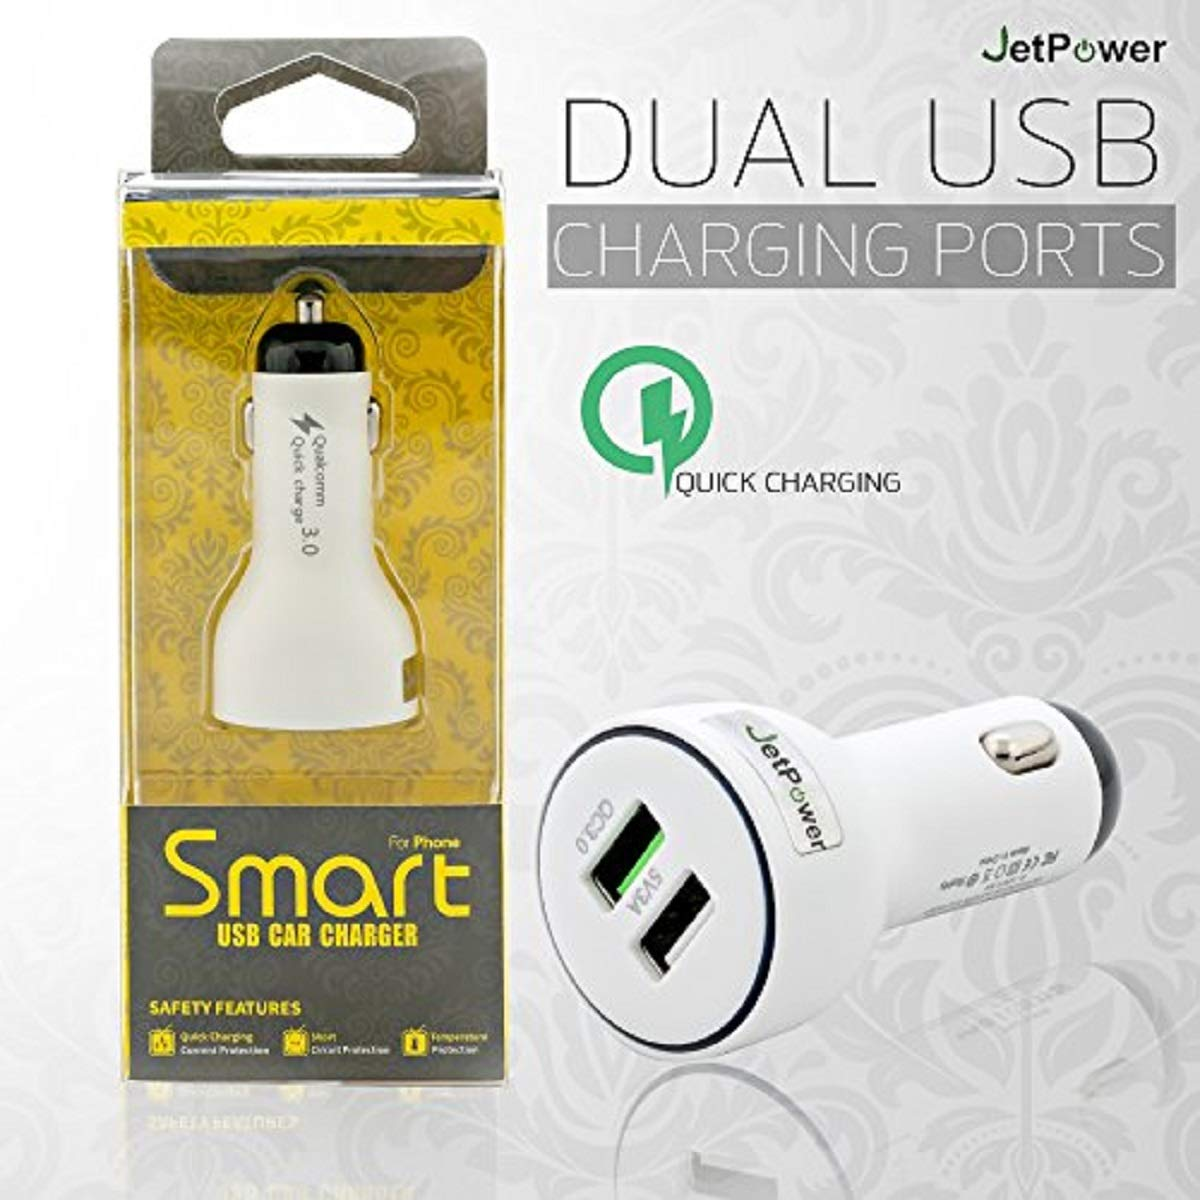 White USB Dual Car Adapter Aluminum Alloy Charger with 10W//3.0A Output for iPhone Xs//Max//XR Samsung Galaxy Note9 and More Quick Charge 3.0 Flush Fit iPad Pro//Mini